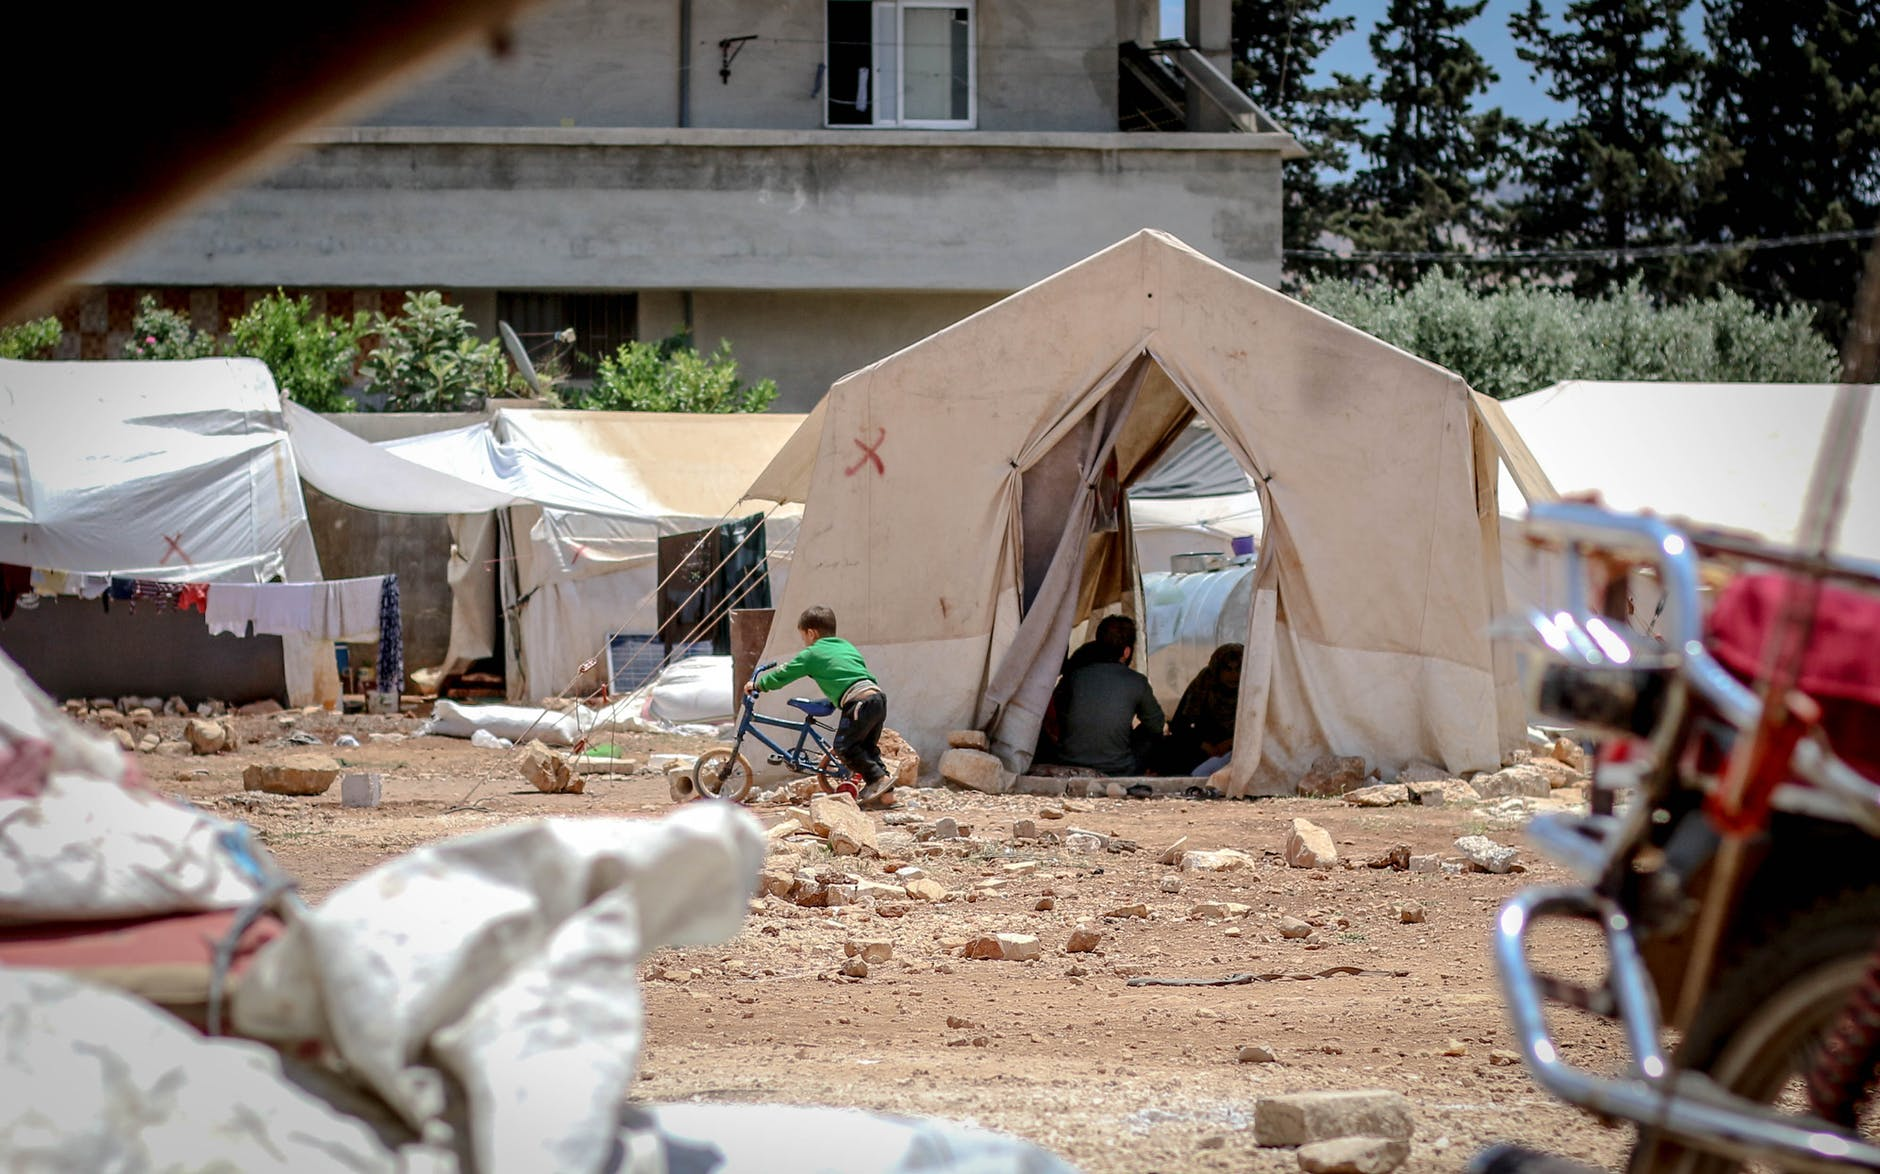 temporary tents on ground in daylight